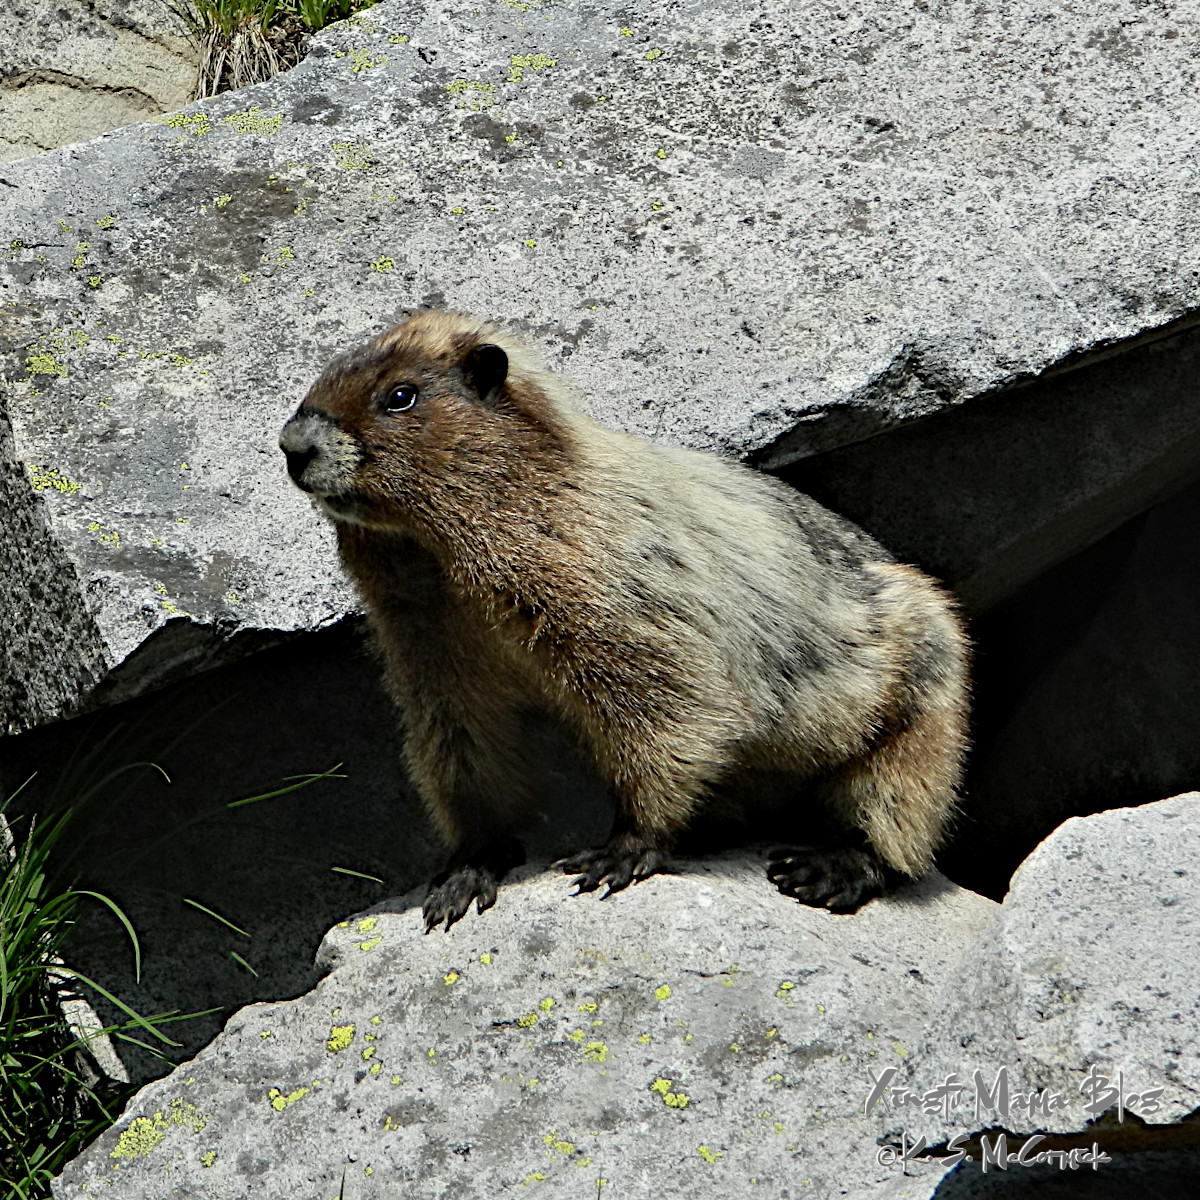 Wooley marmot ready to make a quick get-away into a stony cave.